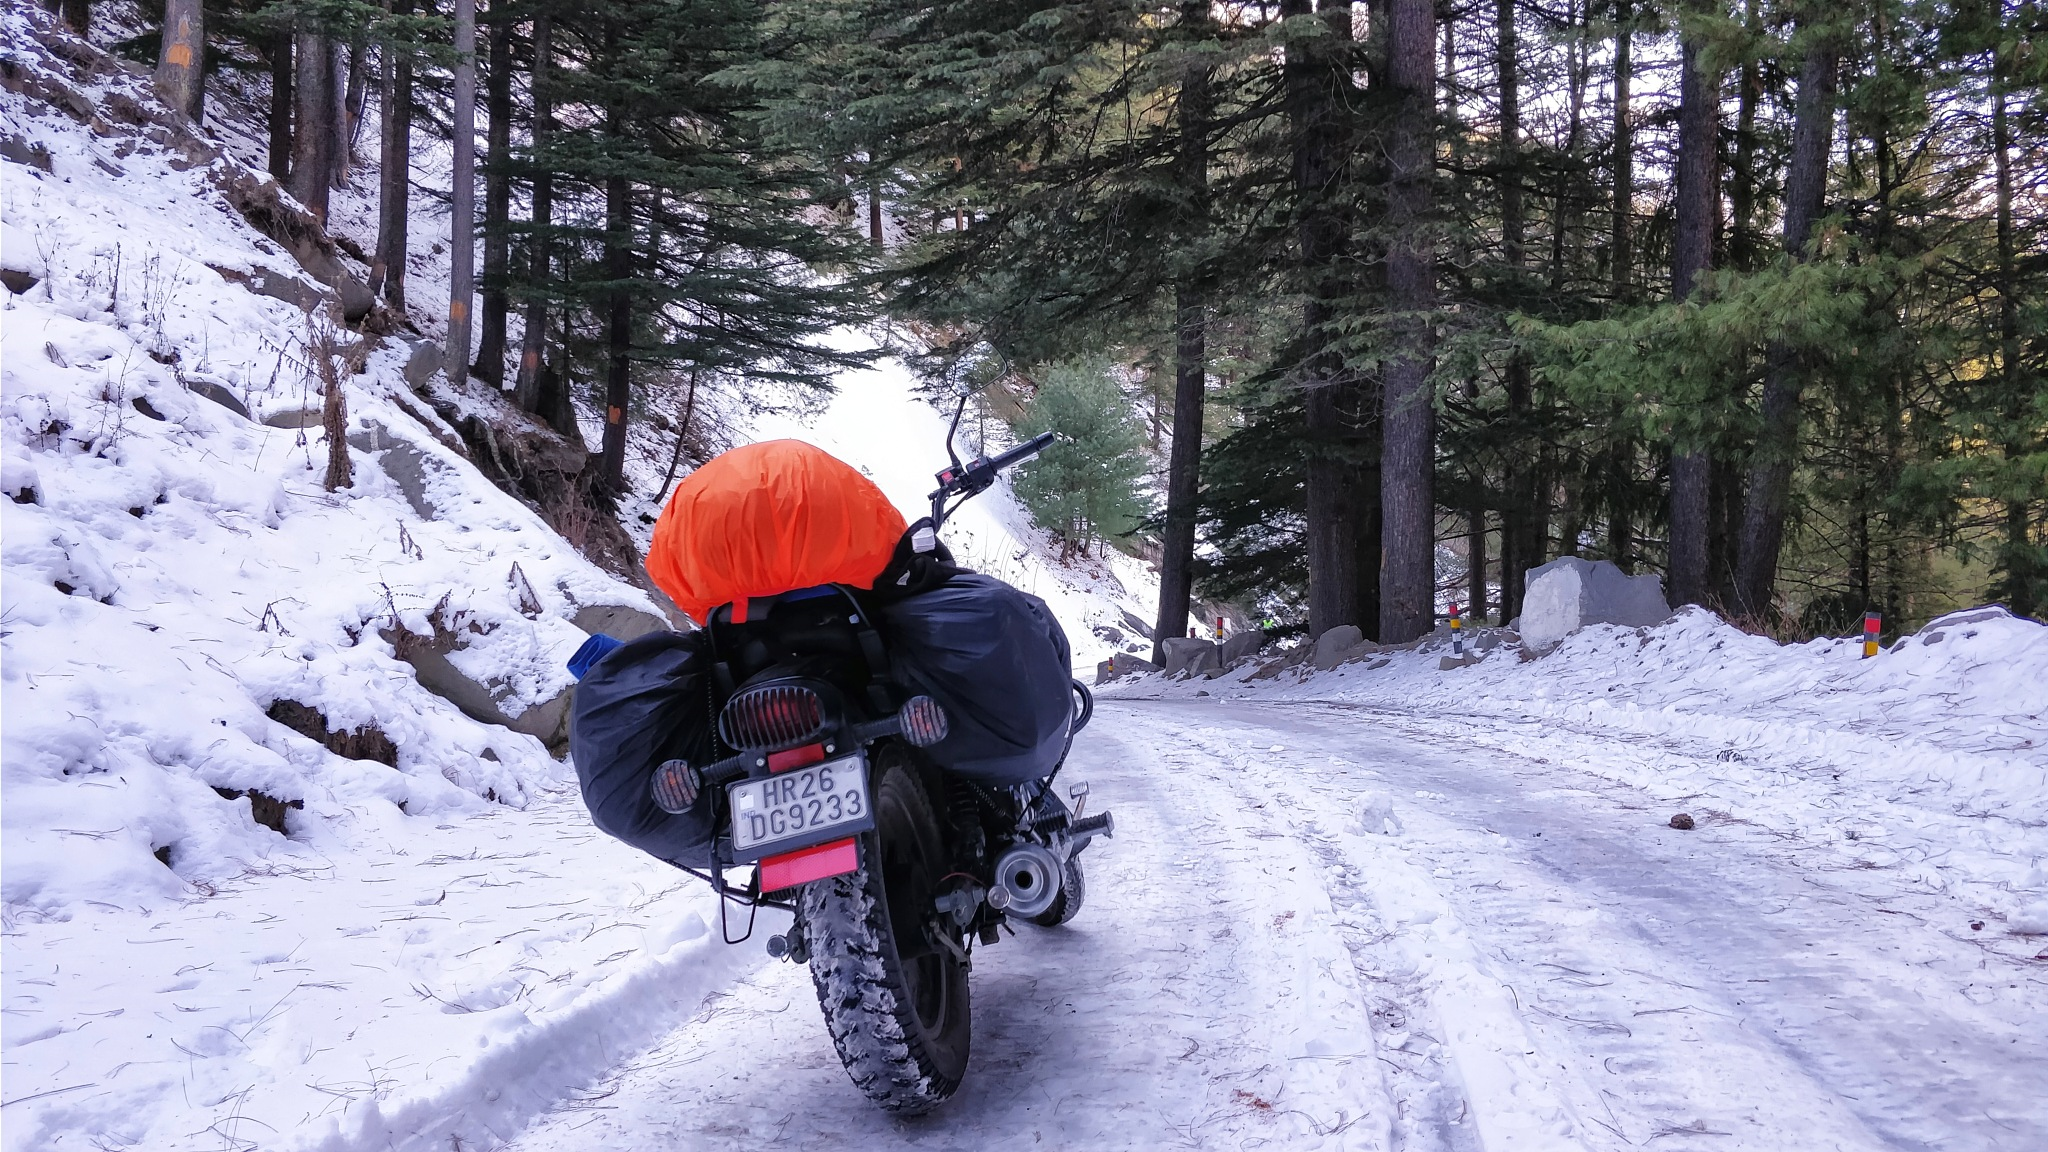 Snow Ride by Aman Chaudhary